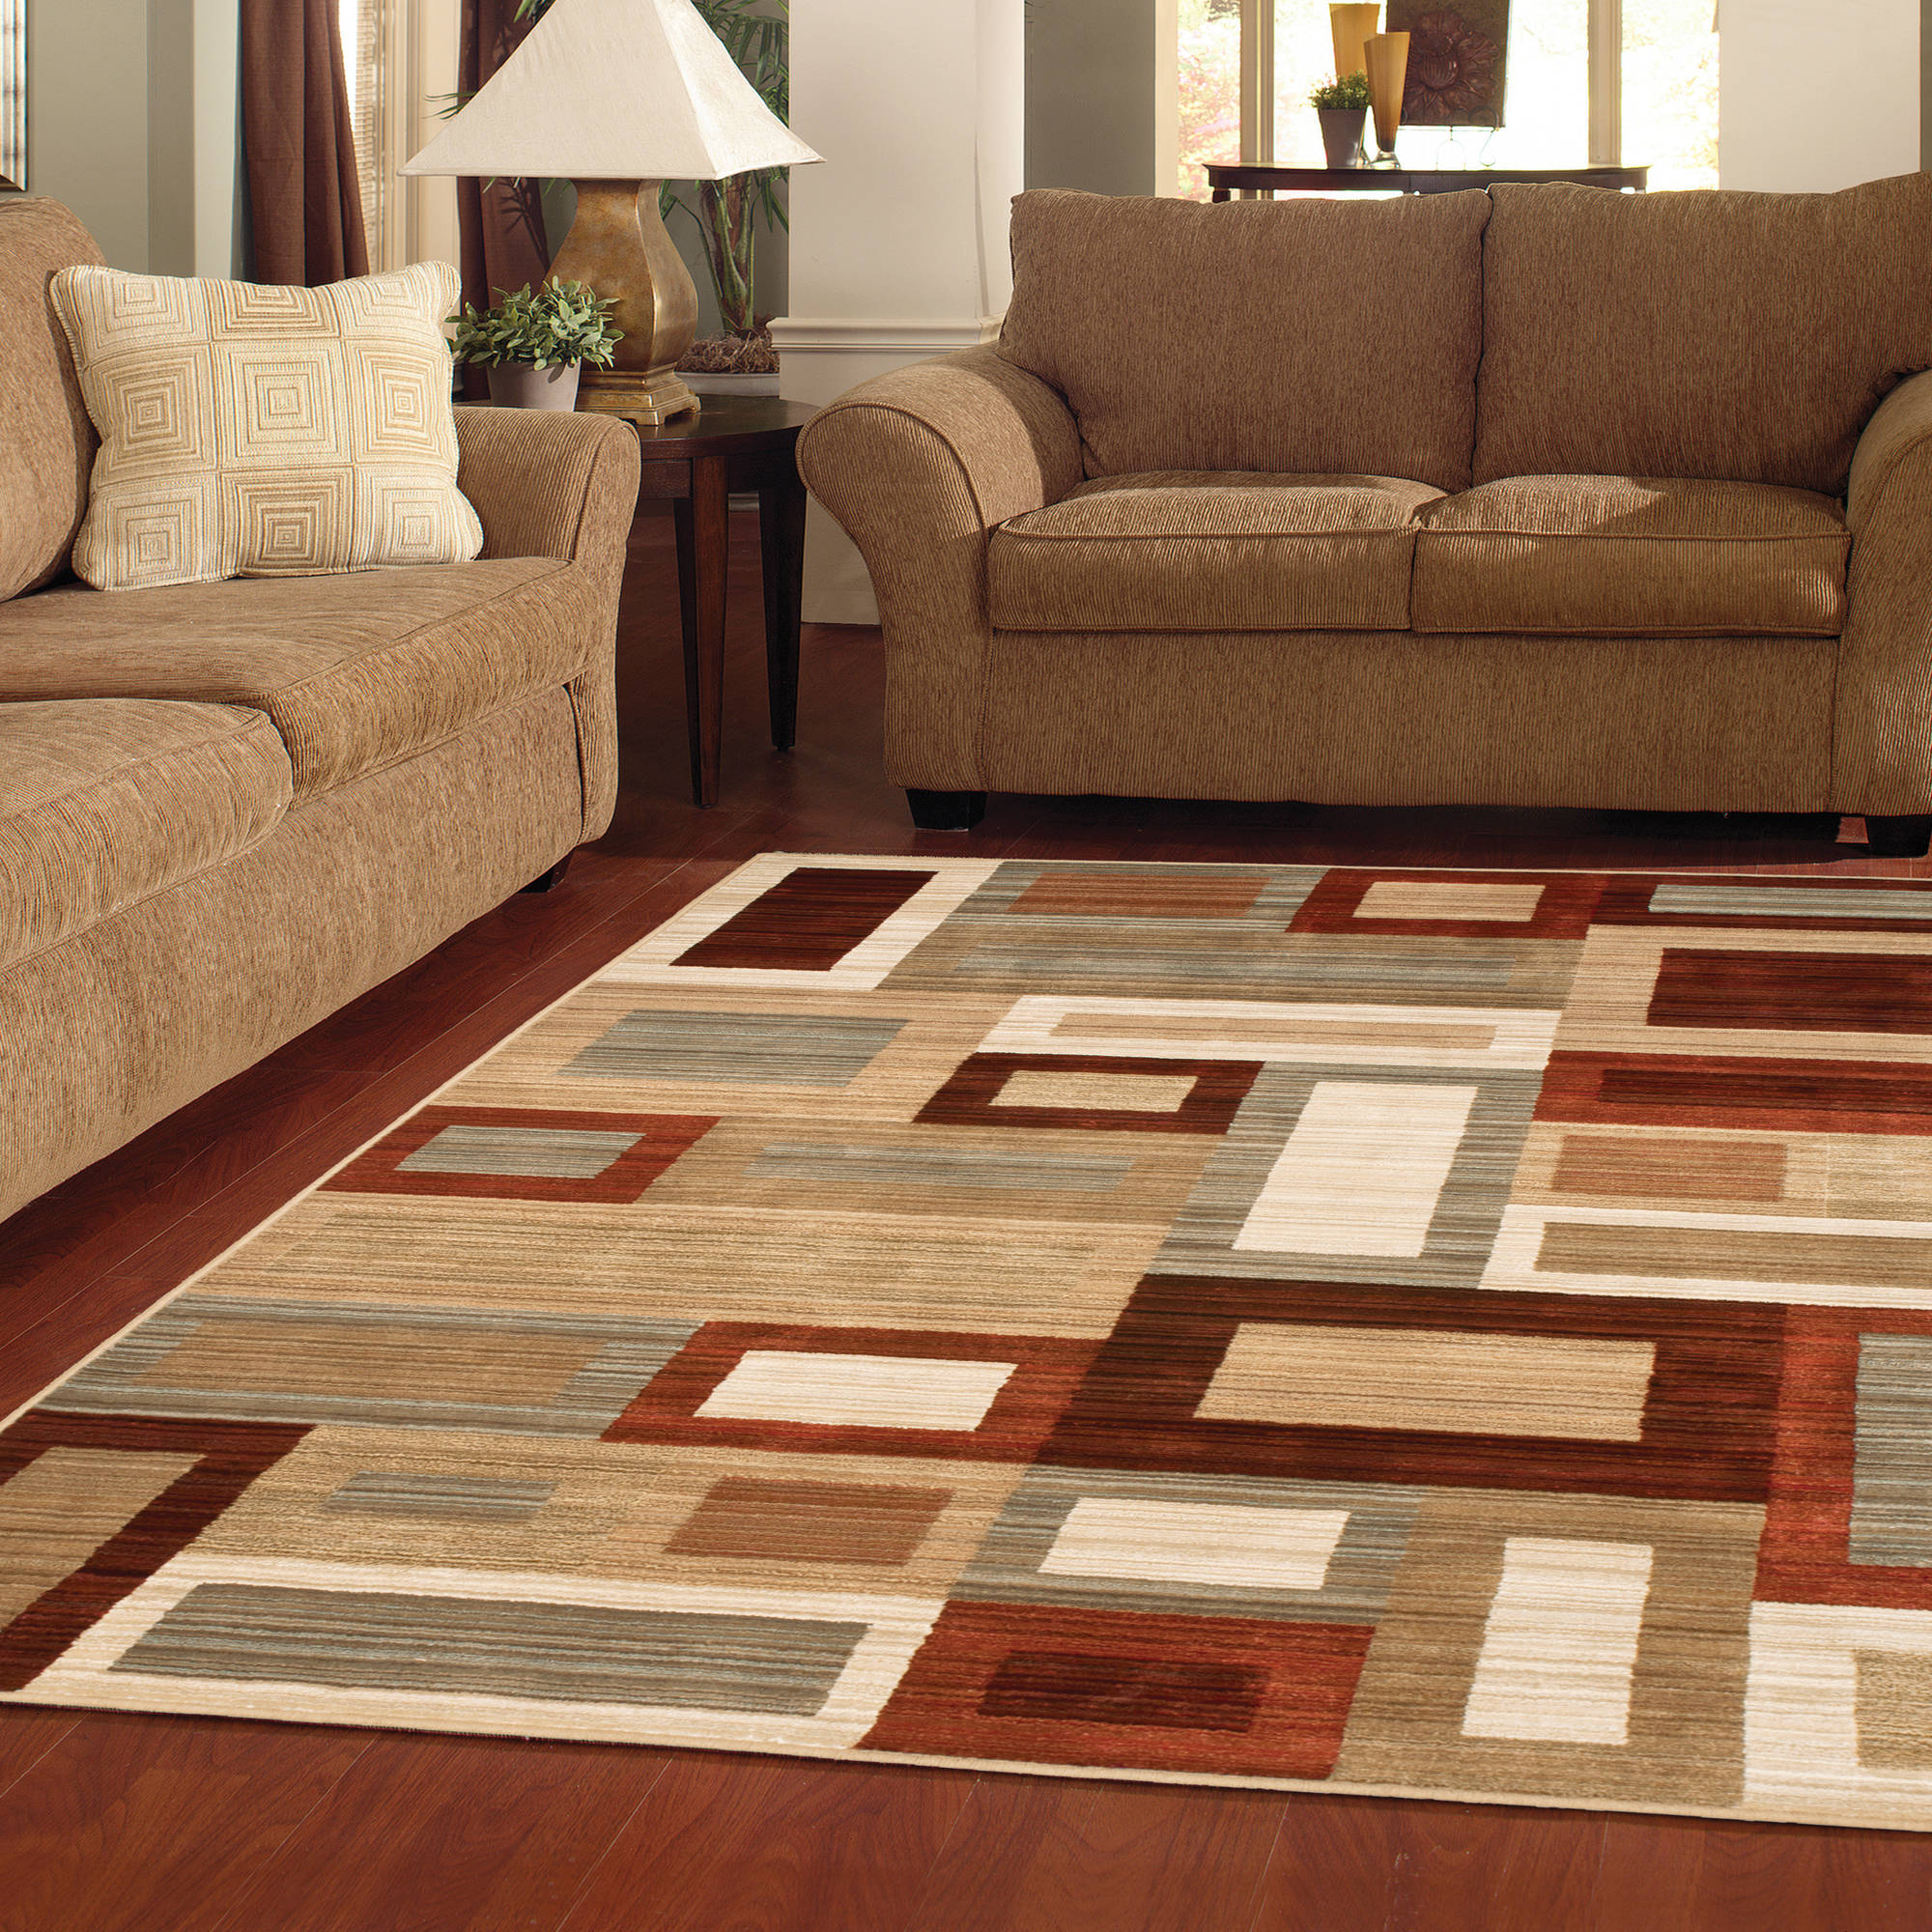 Better Homes and Gardens Franklin Squares Woven Olefin Area Rug